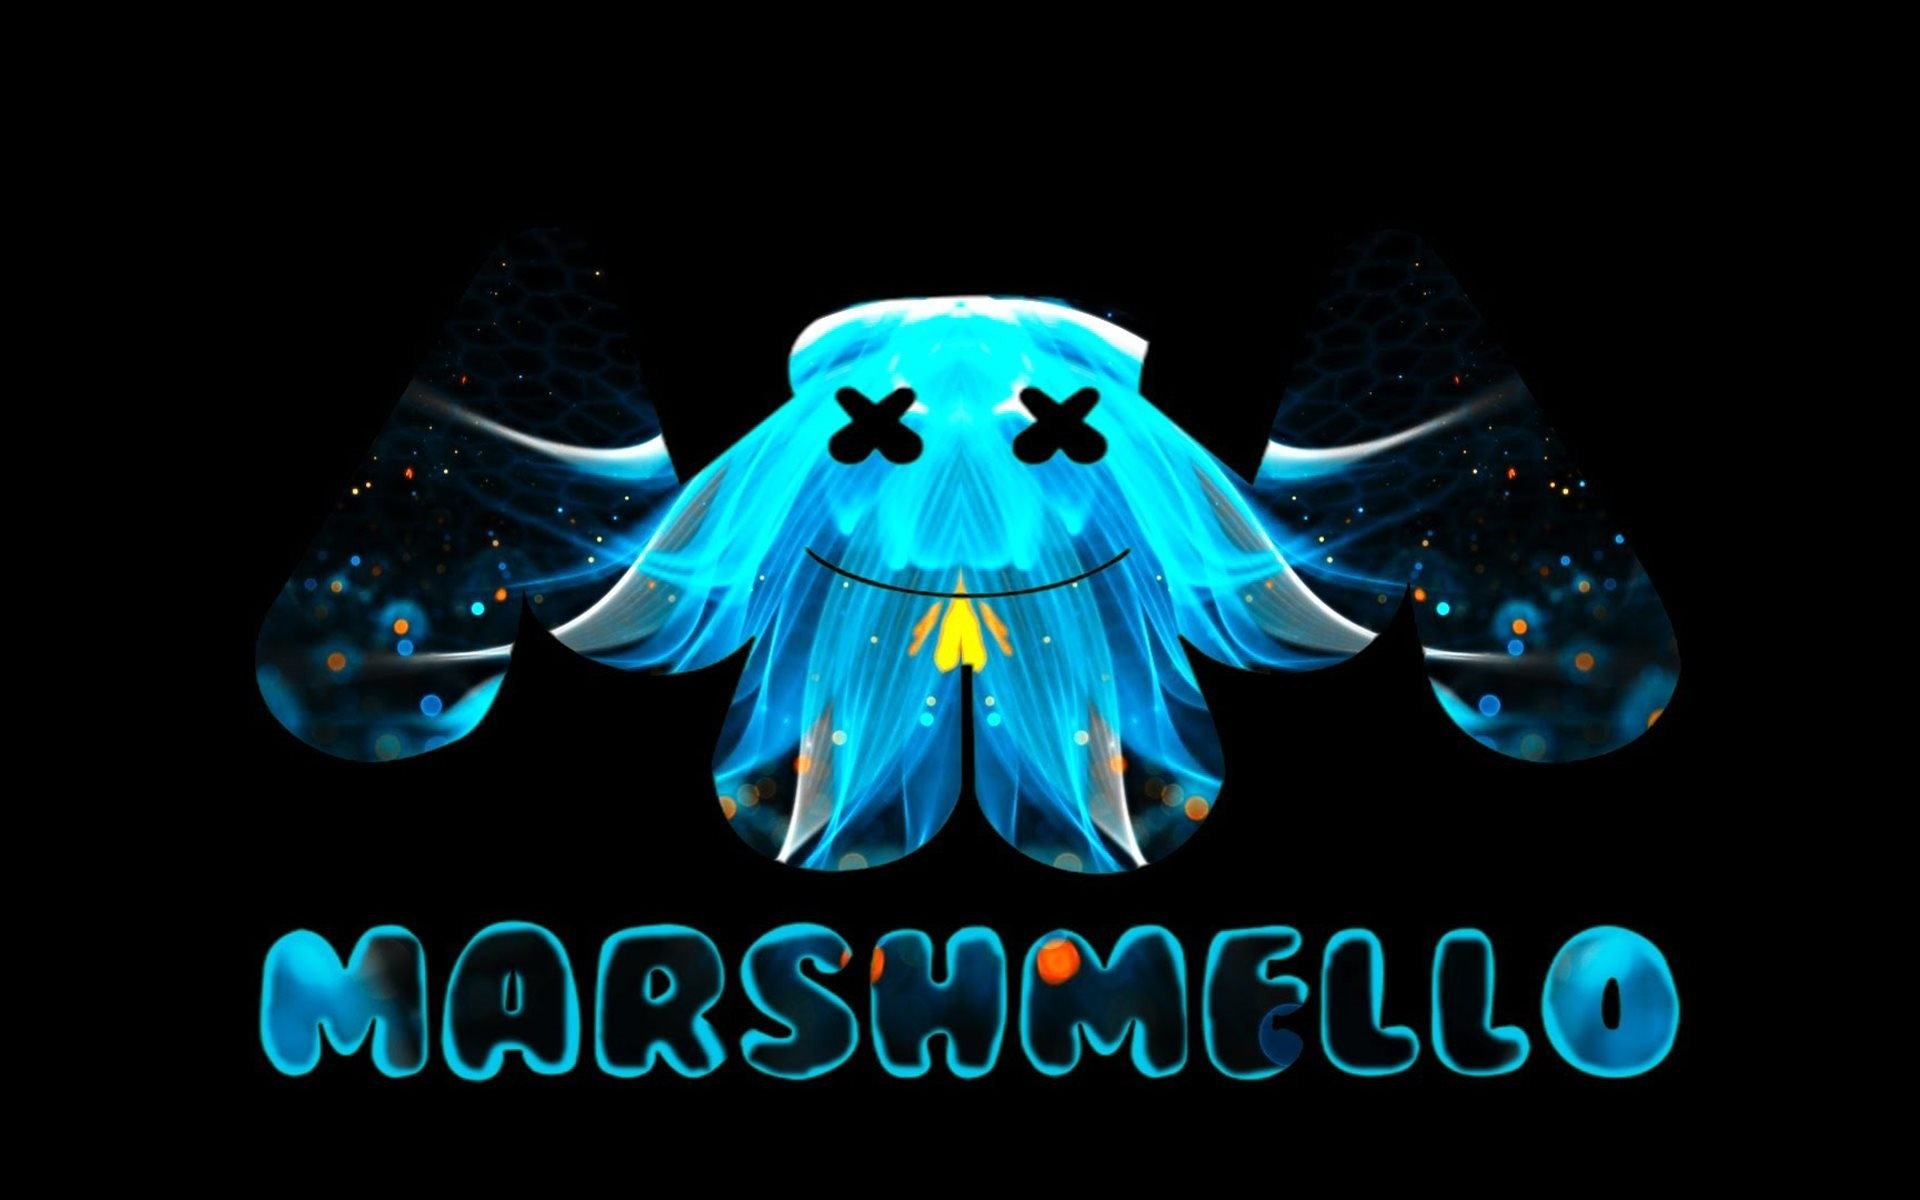 Dj Marshmello Wallpapers 62 Background Pictures